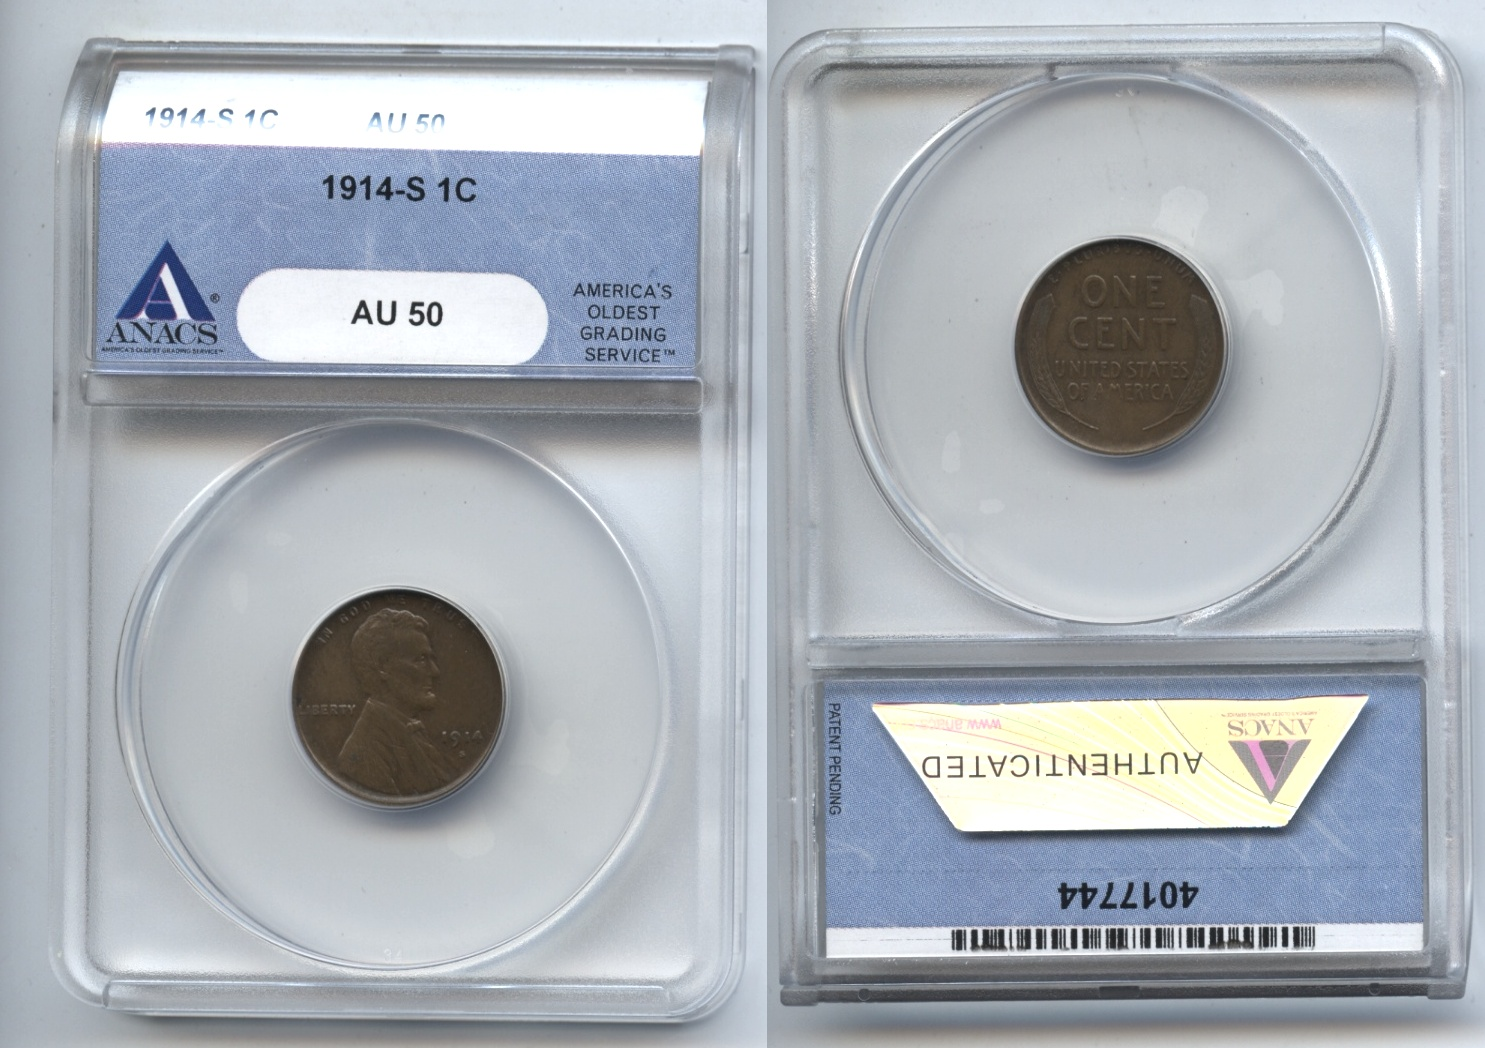 1914-S Lincoln Cent ANACS AU-50